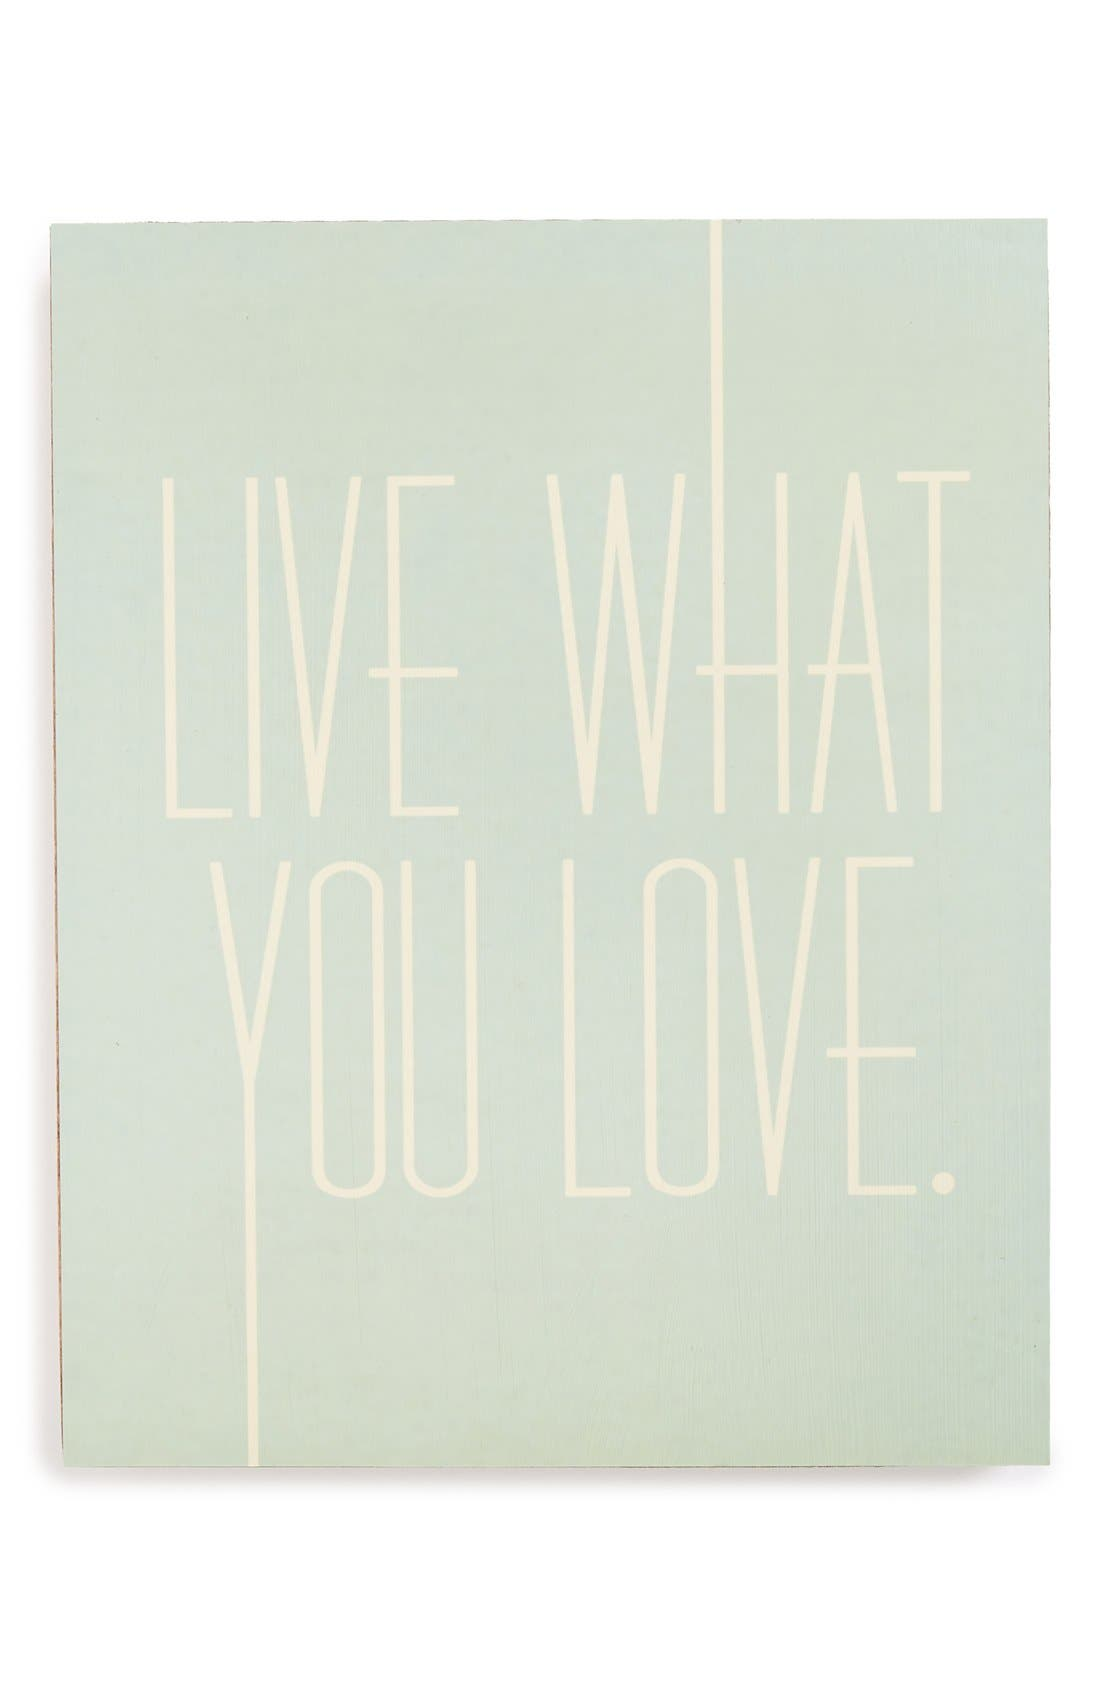 Alternate Image 1 Selected - Lucius Designs 'Live What You Love' Wall Art